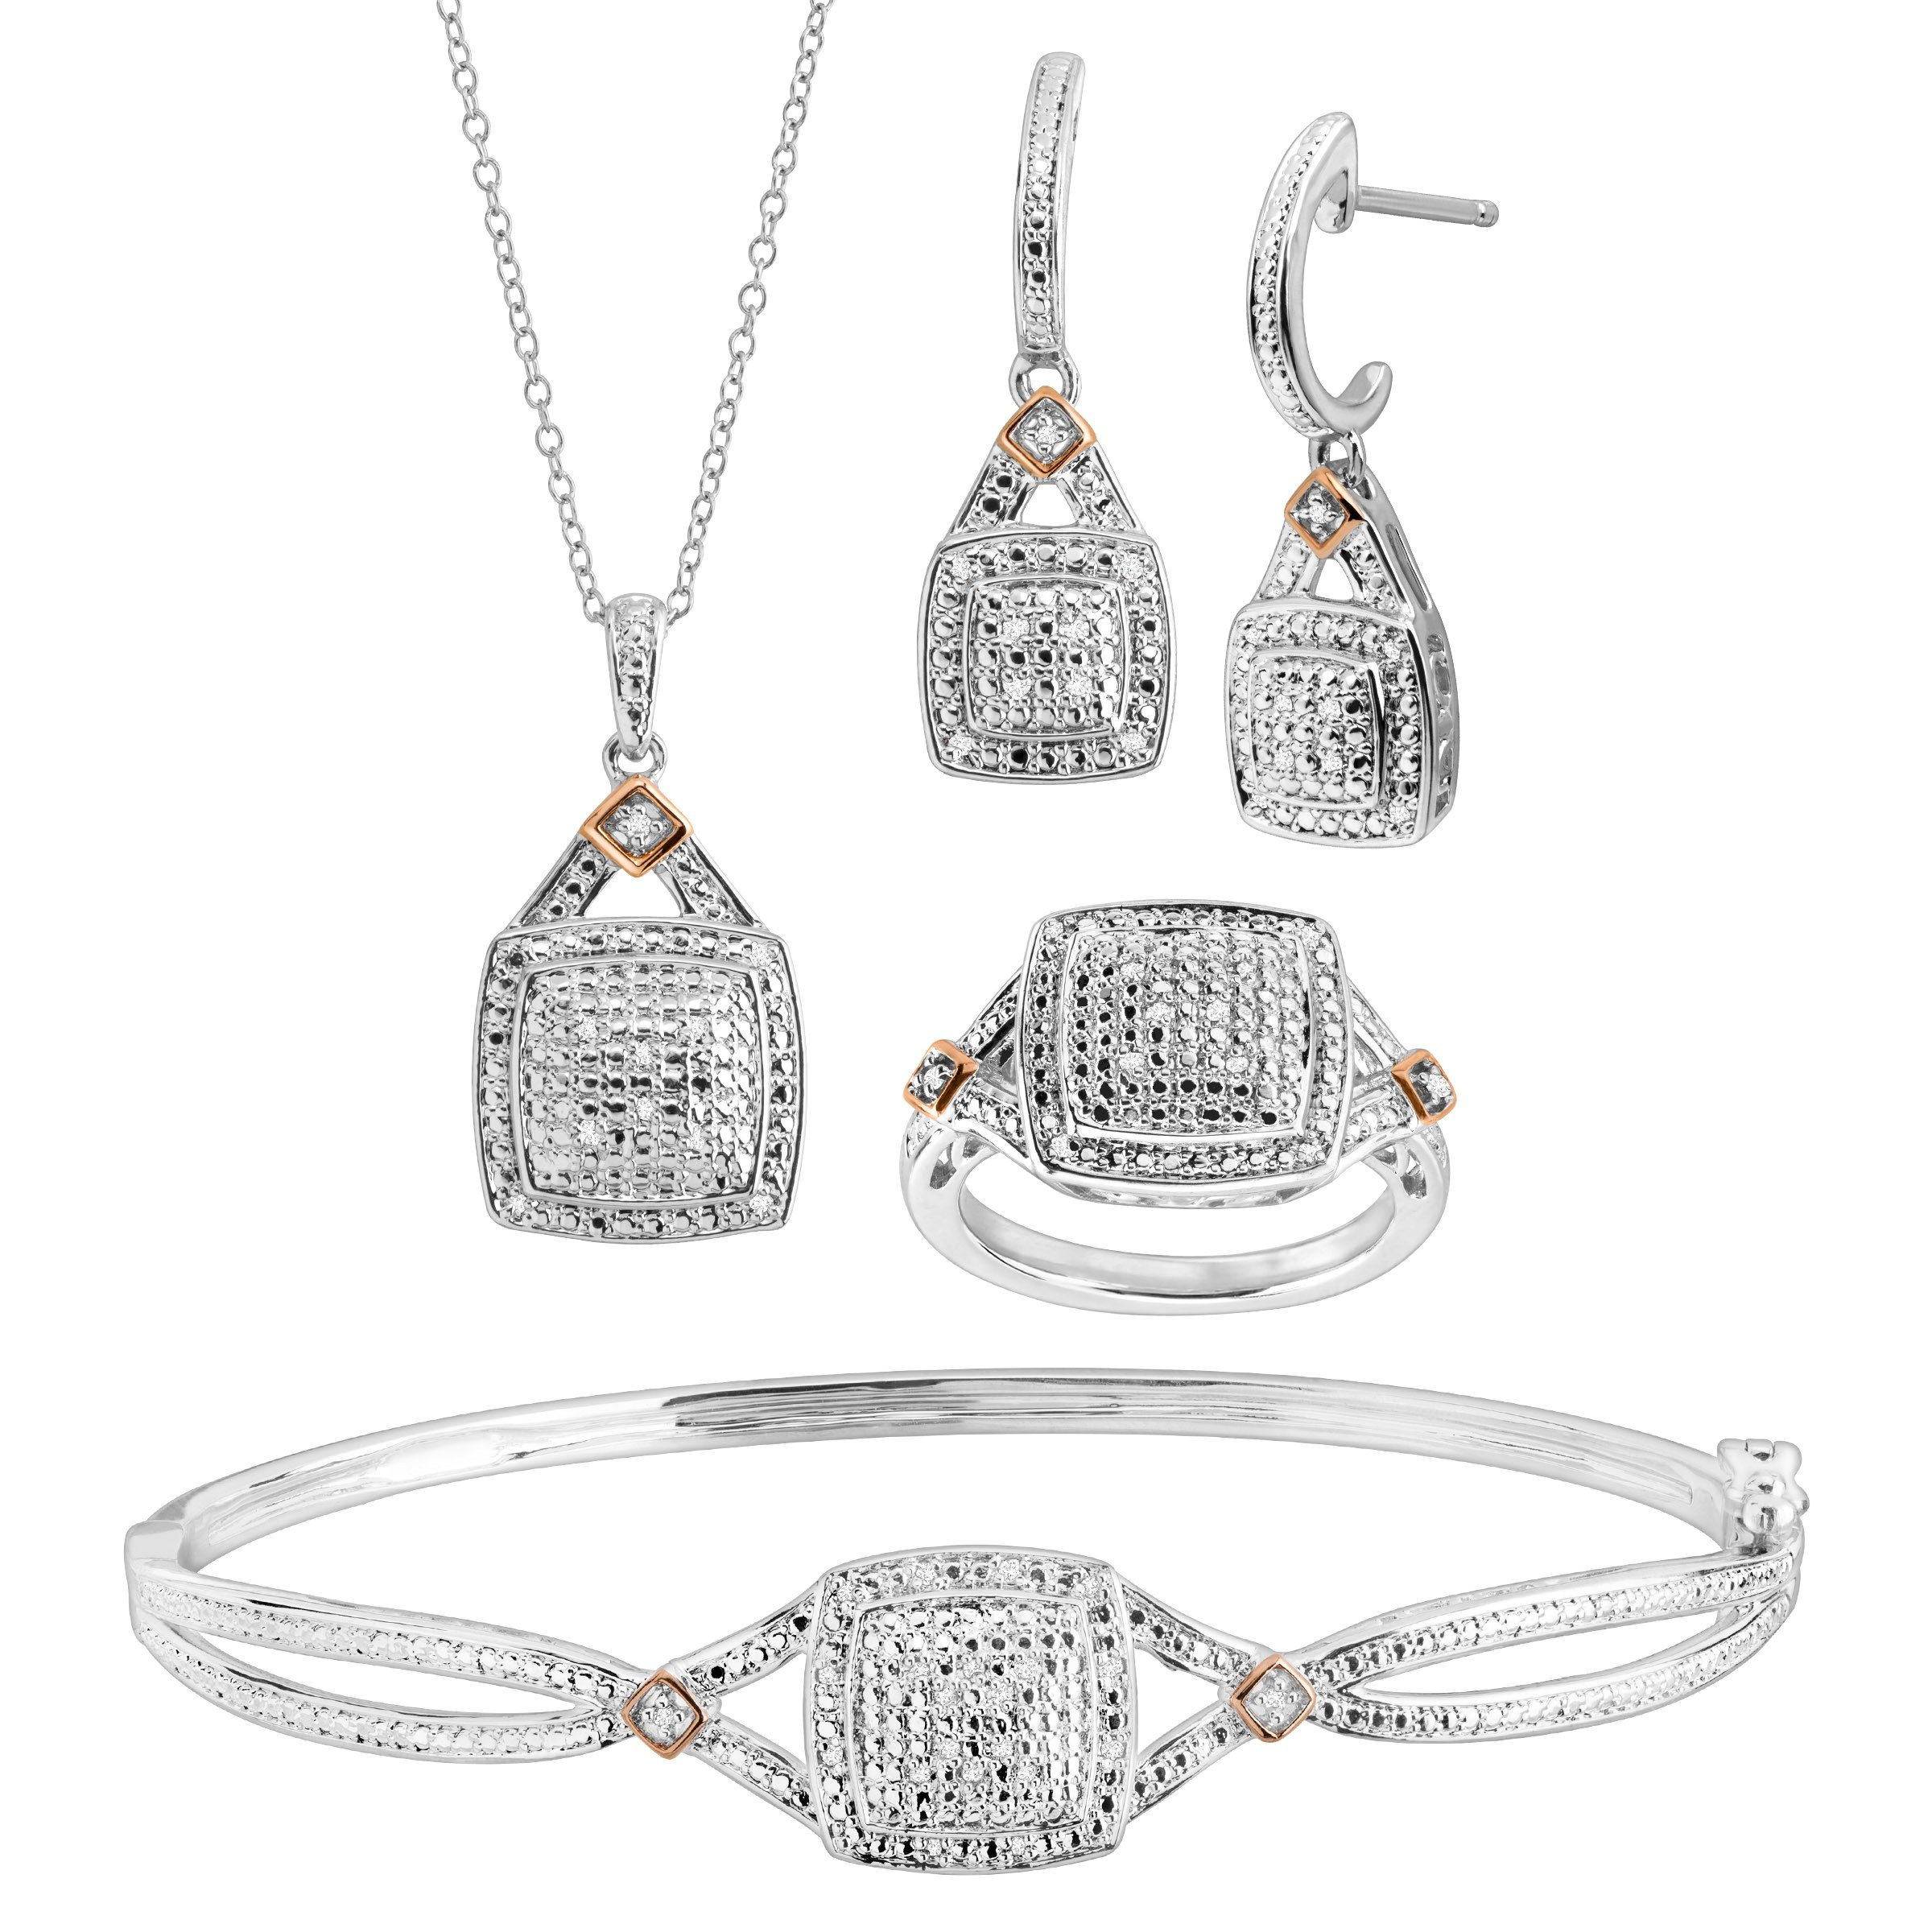 1/5 ct Diamond Pendant, Bangle, Ring, Earrings Set in Sterling Silver-Plated Brass